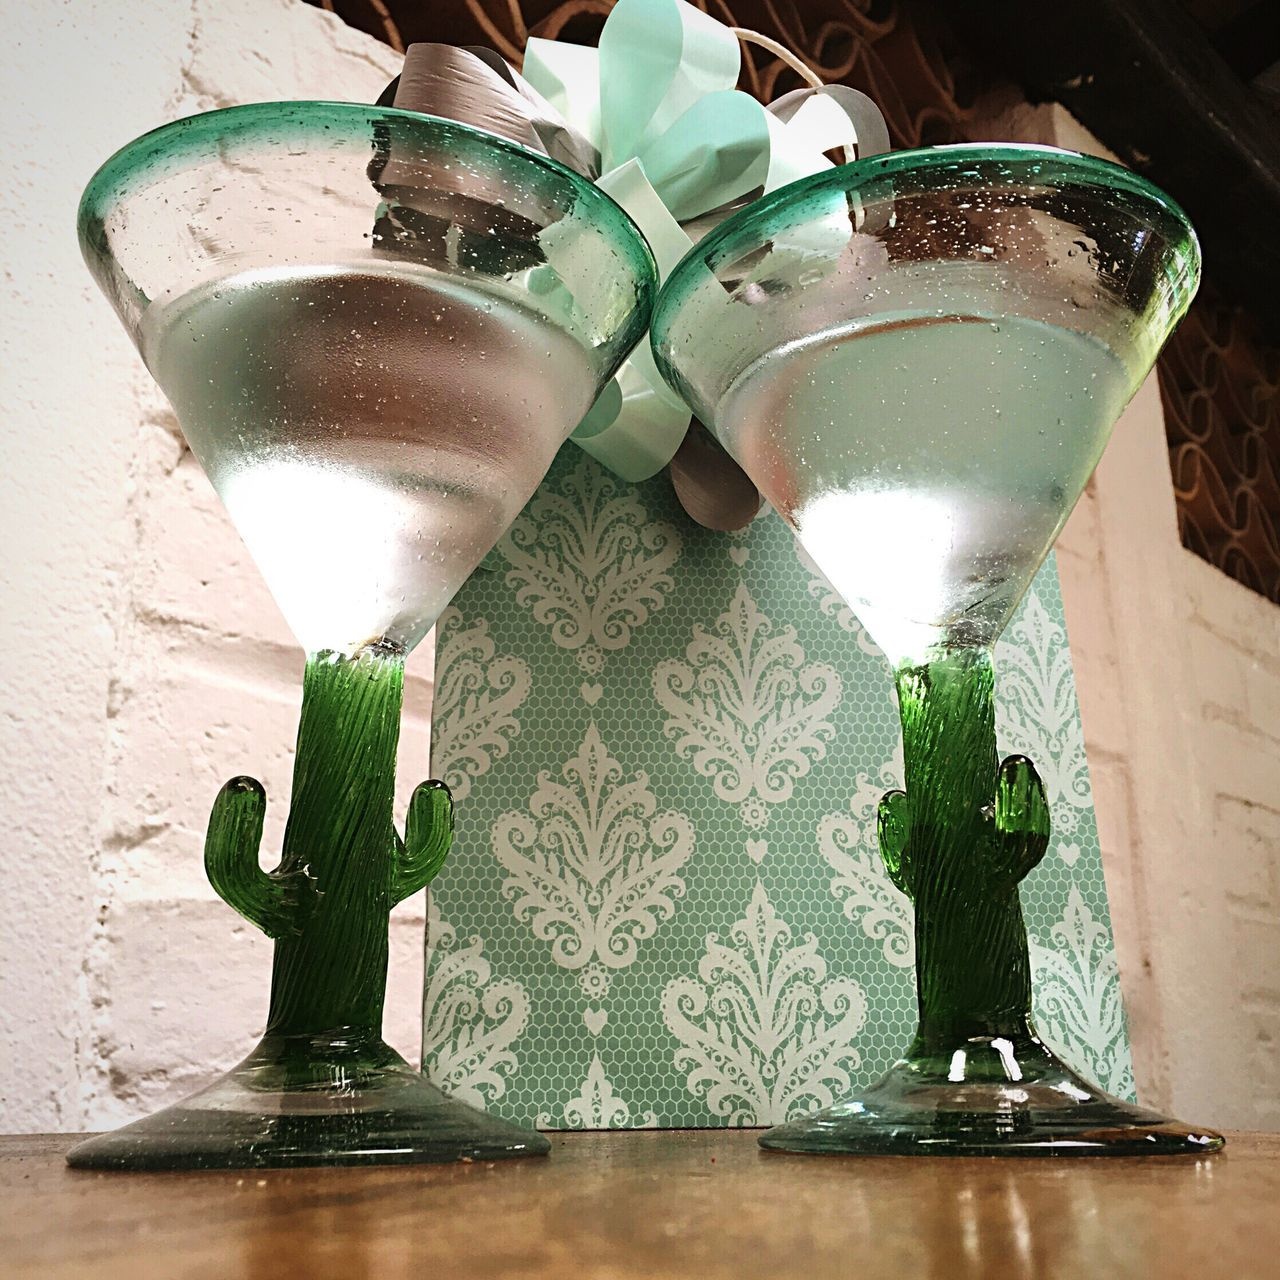 Surprises Surprises Glass Of Water Drink Refreshment Table No People Freshness Drinking Glass Indoors  Day Mexico Mint Green Cactus